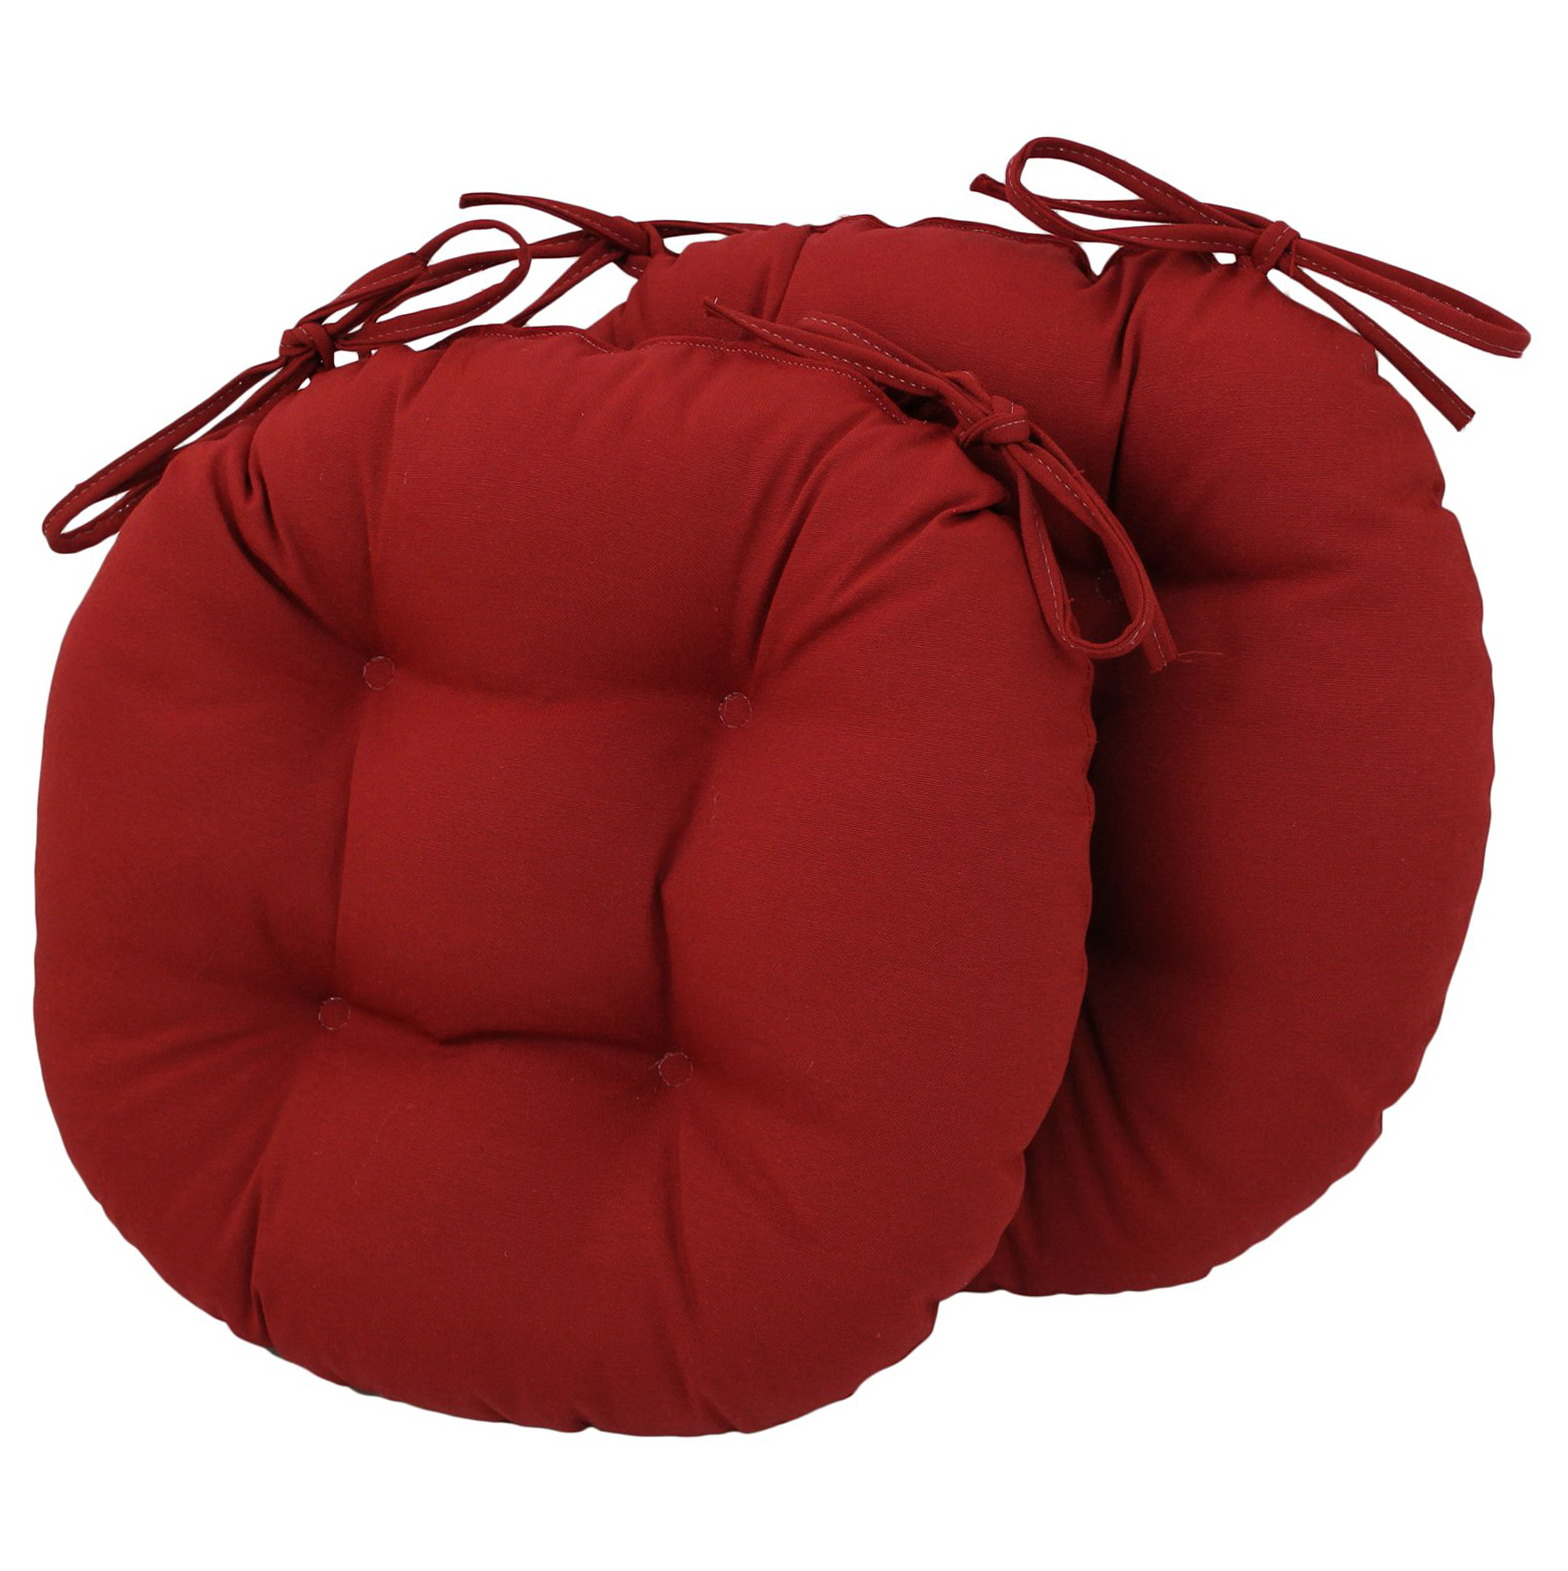 Round Stool Cushions With Ties